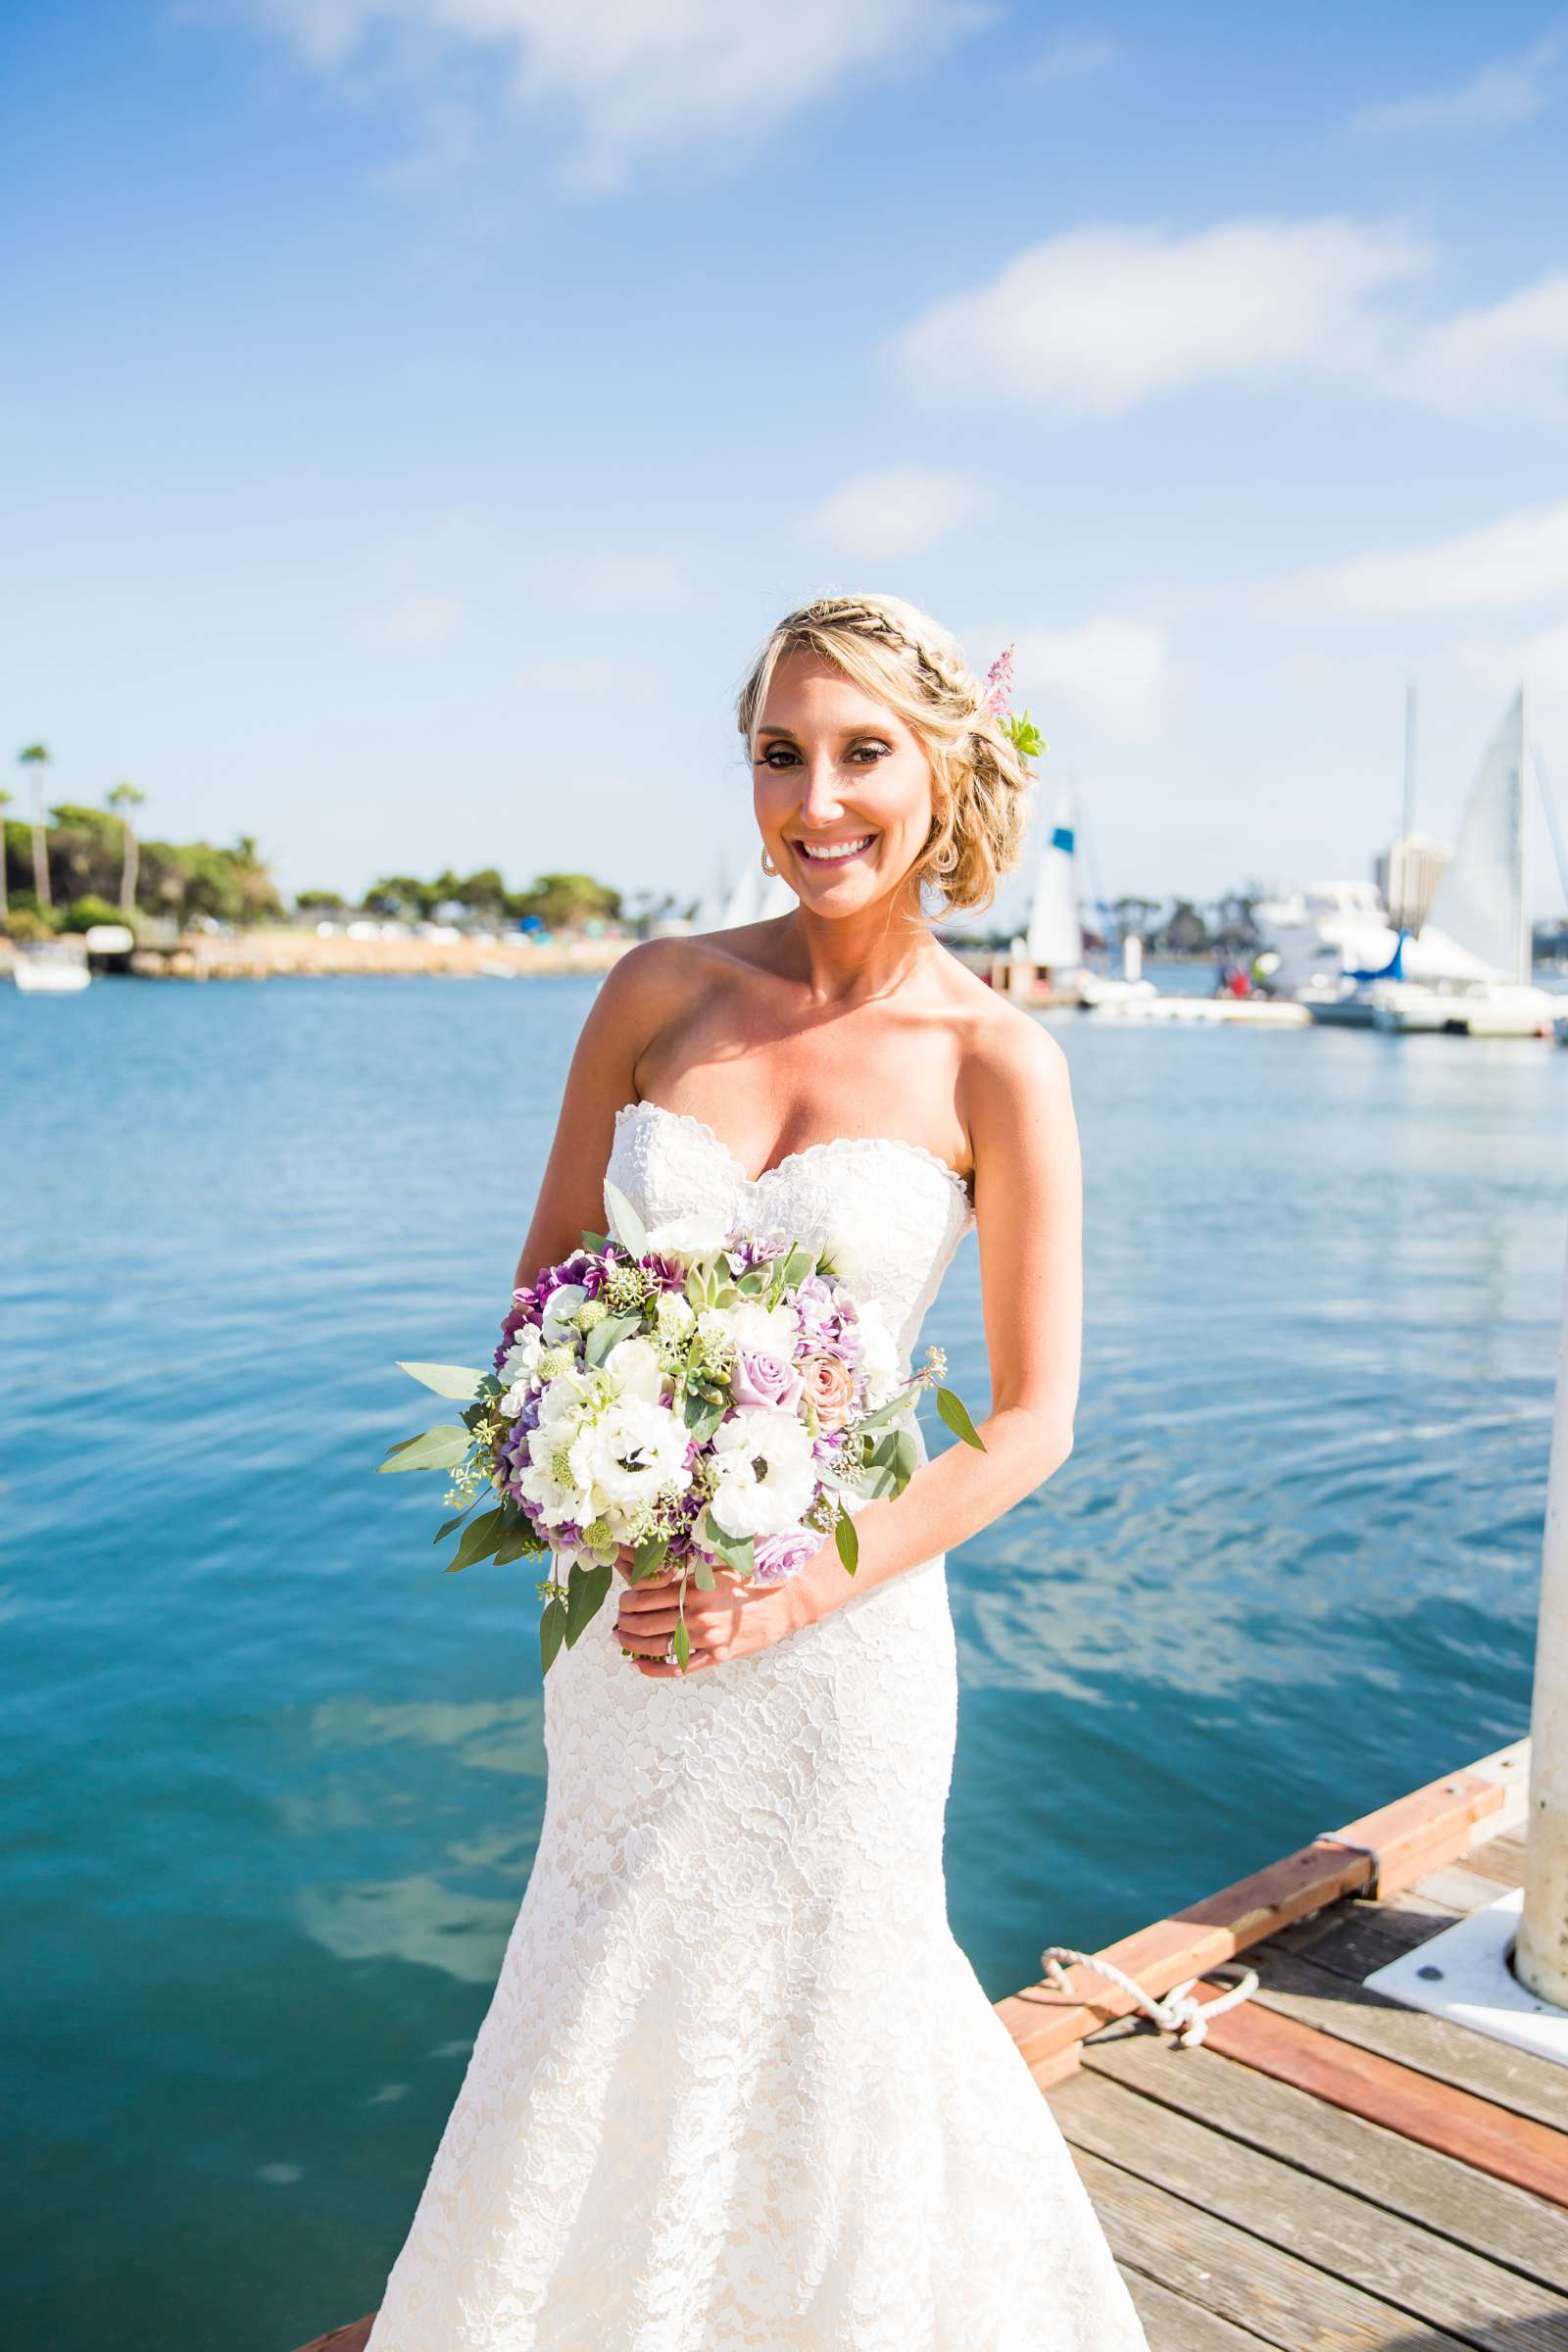 Paradise Point Wedding, Kimberly and Michael Wedding Photo #57 by True Photography